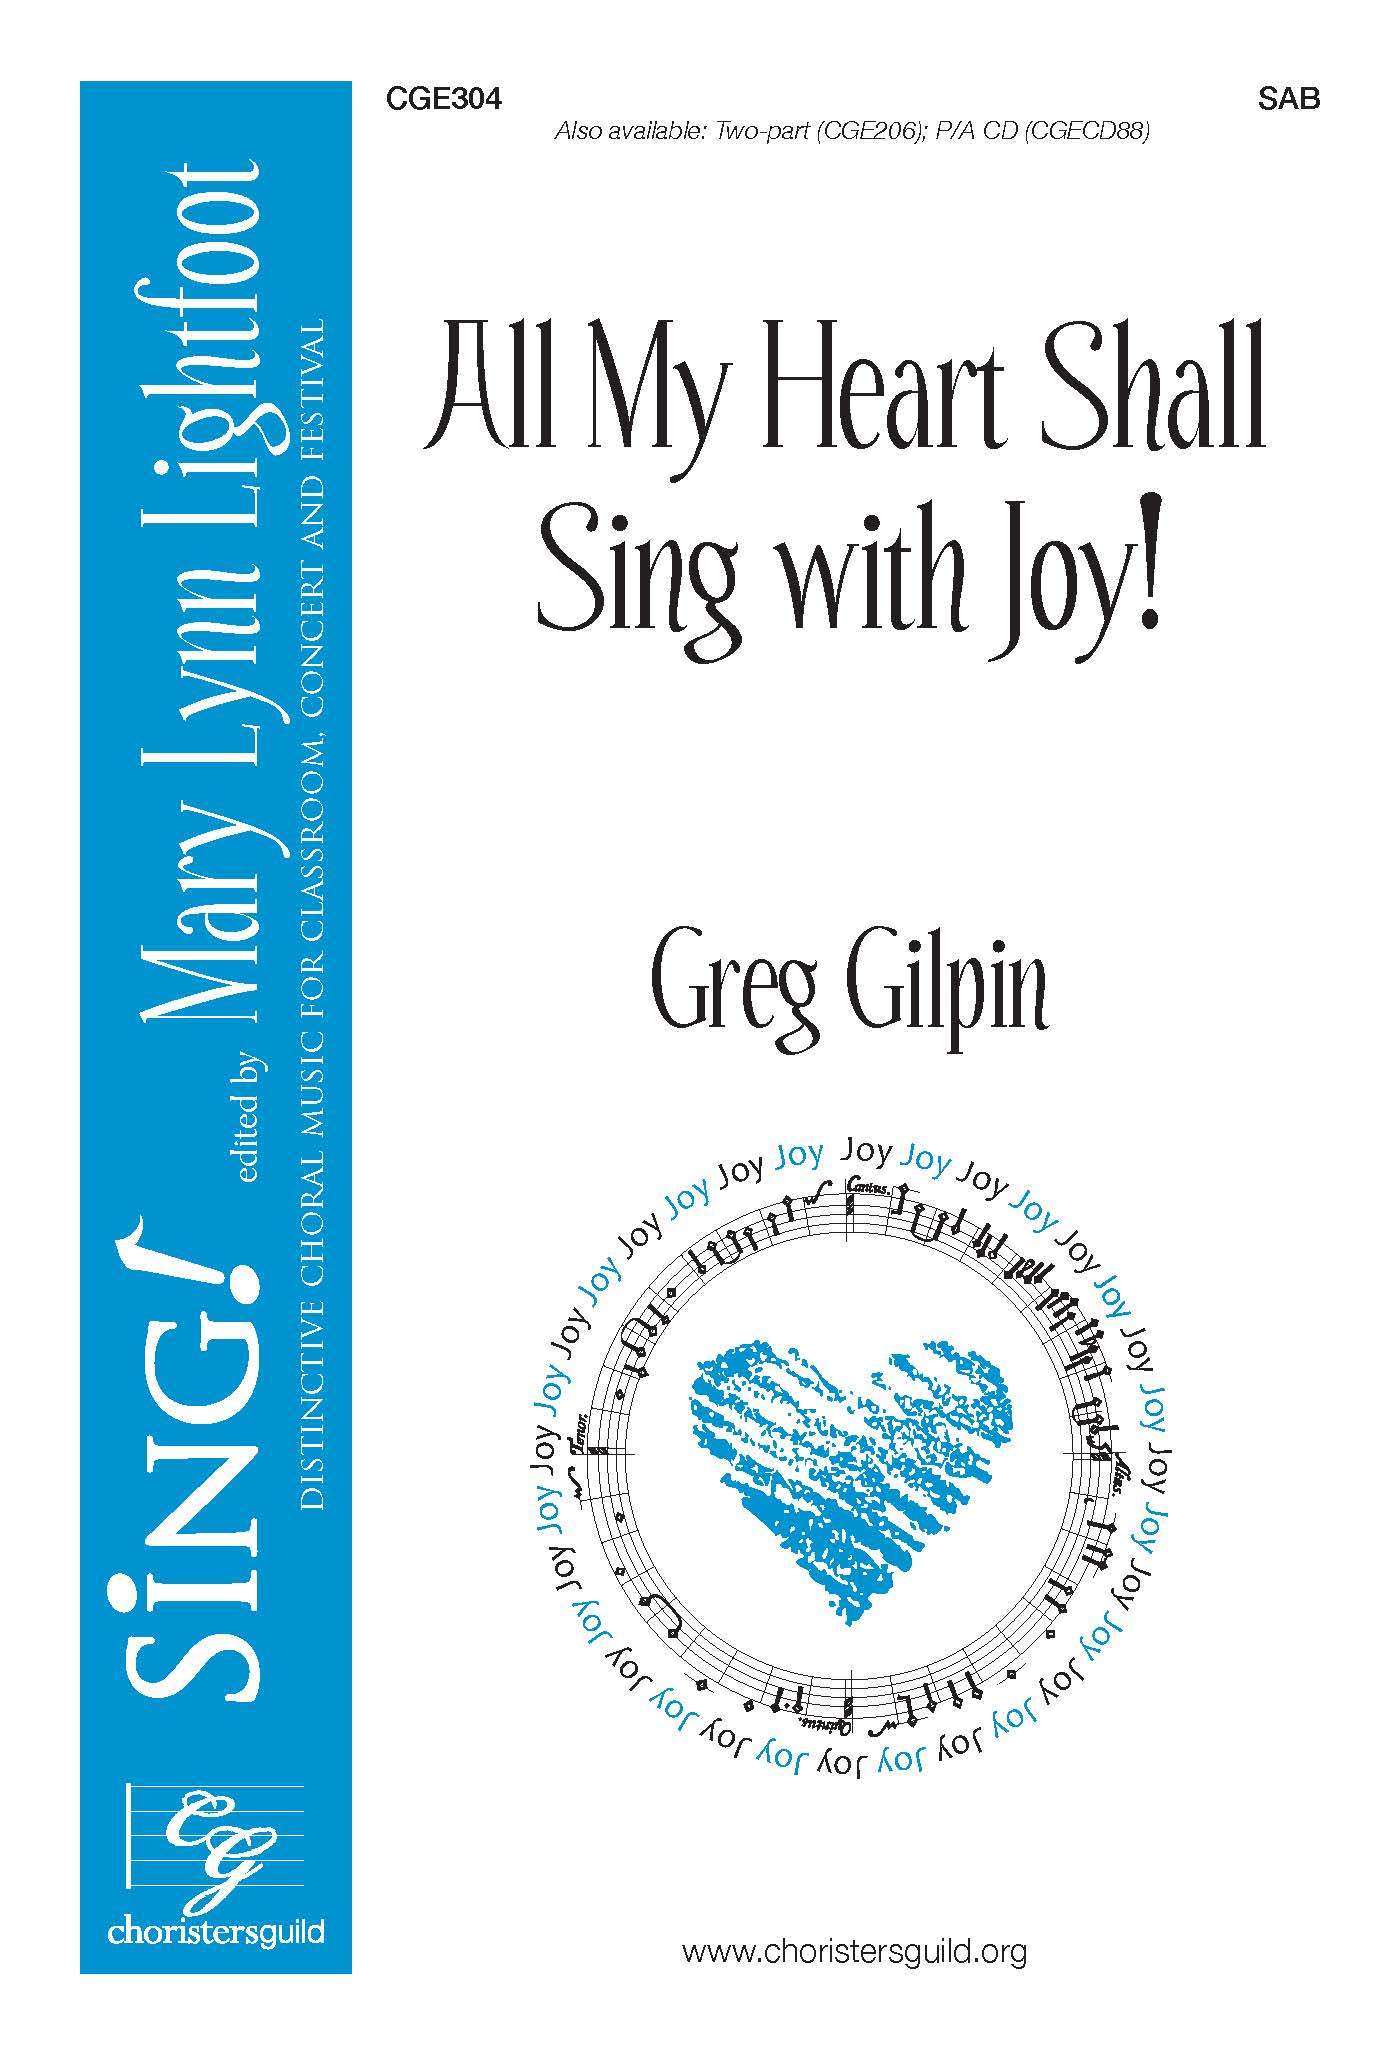 All My Heart Shall Sing with Joy! - SAB